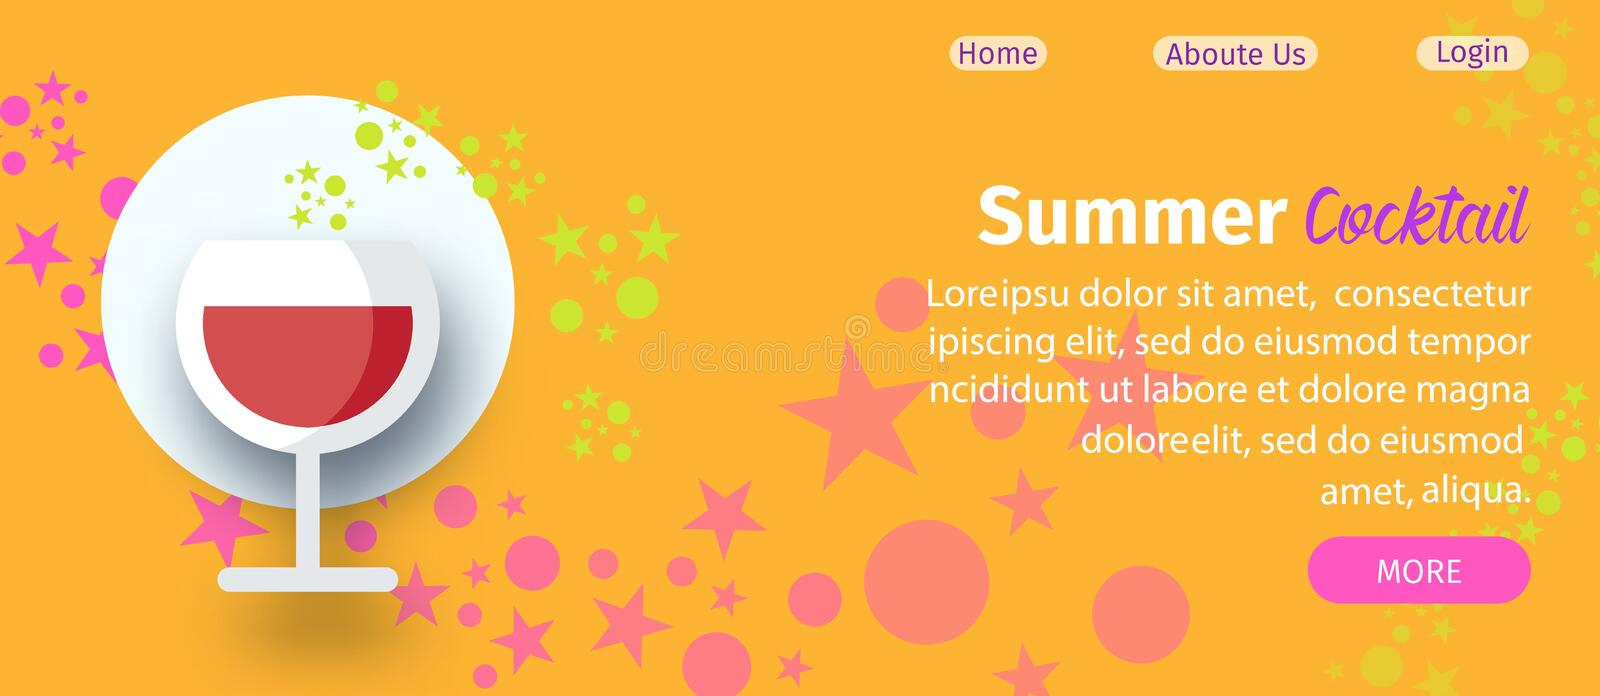 Summer Cocktail Party Website Flat Vector Template vector illustration